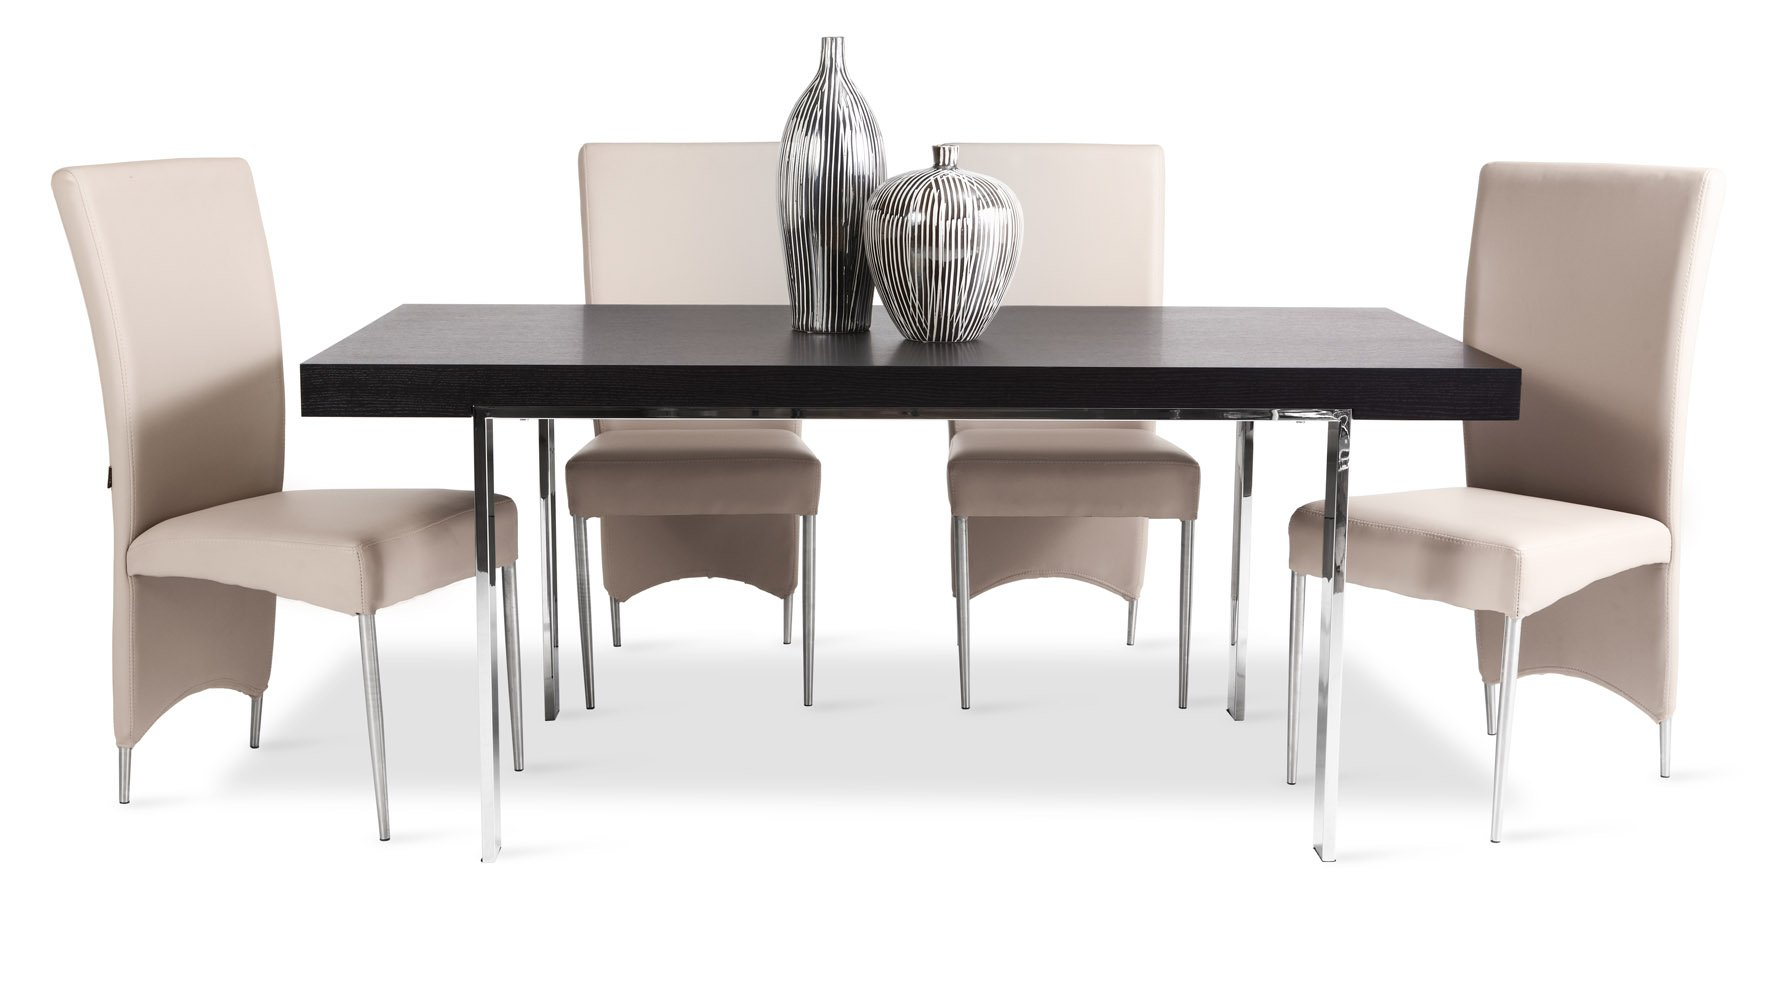 Norah Modern Espresso Wood Dining Table with Chrome Legs | Zuri ...